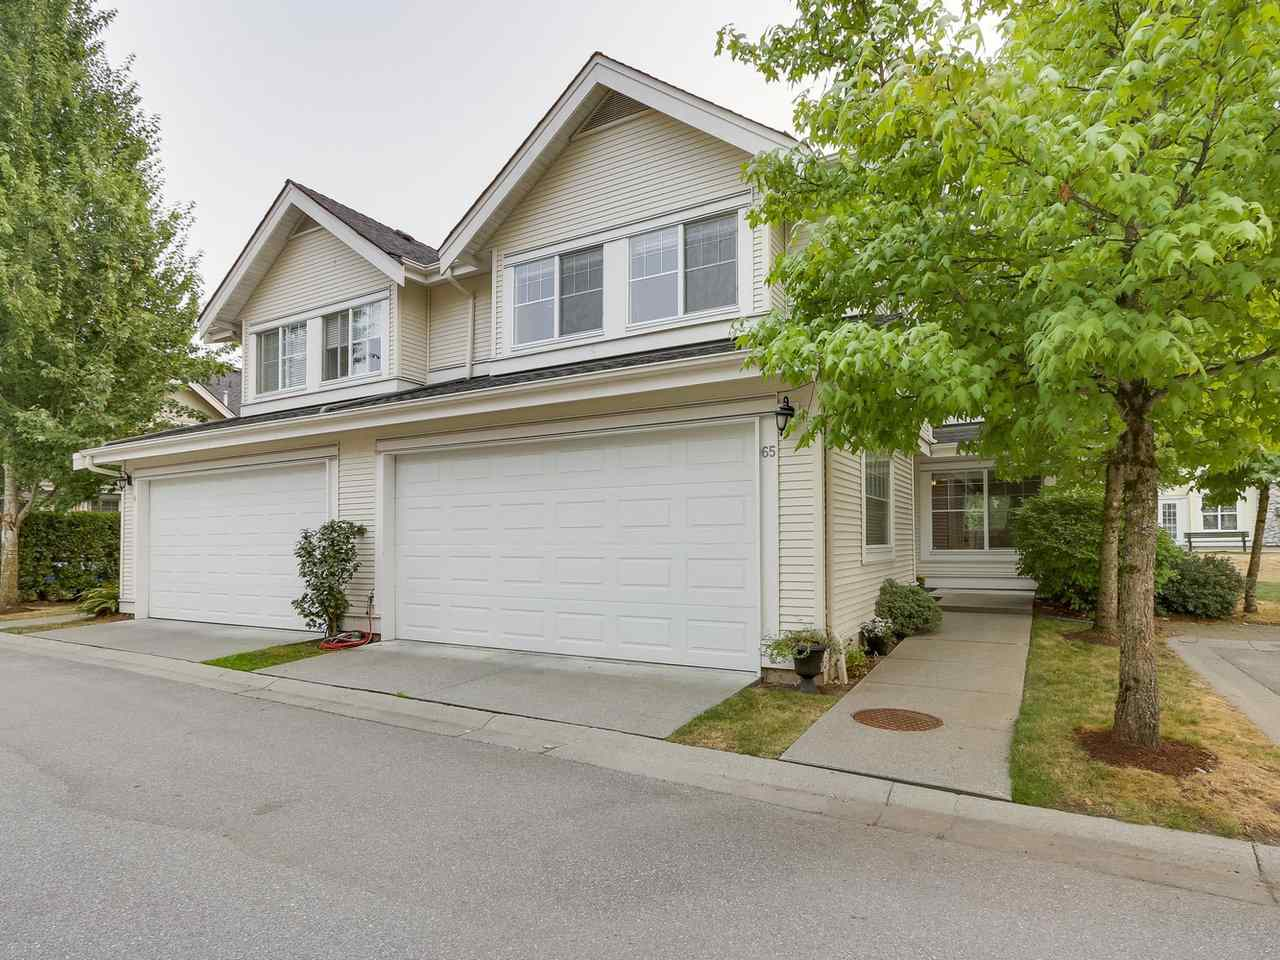 Townhouse at 65 17097 64TH AVENUE, Unit 65, Cloverdale, British Columbia. Image 1